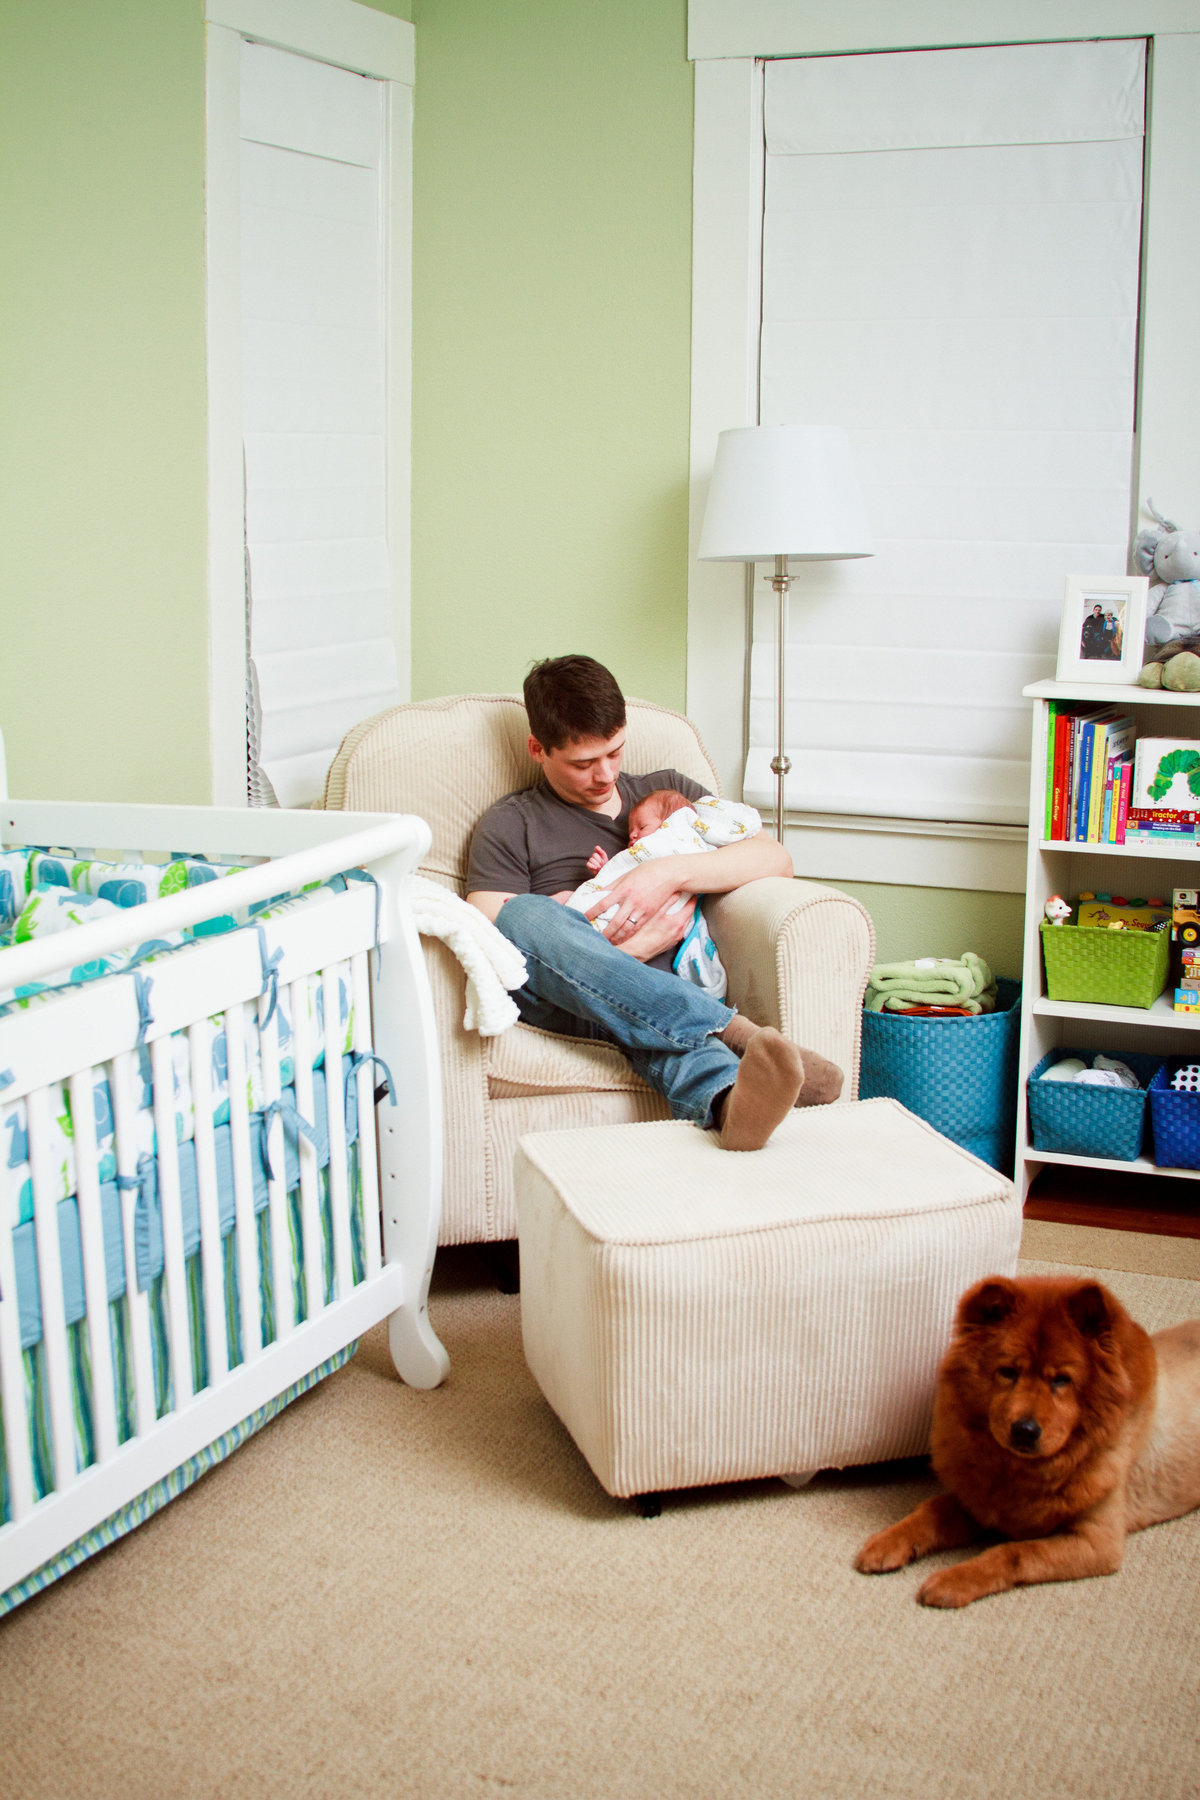 In home newborn photography session in San Antonio with Father, son, and dog in the nursery.